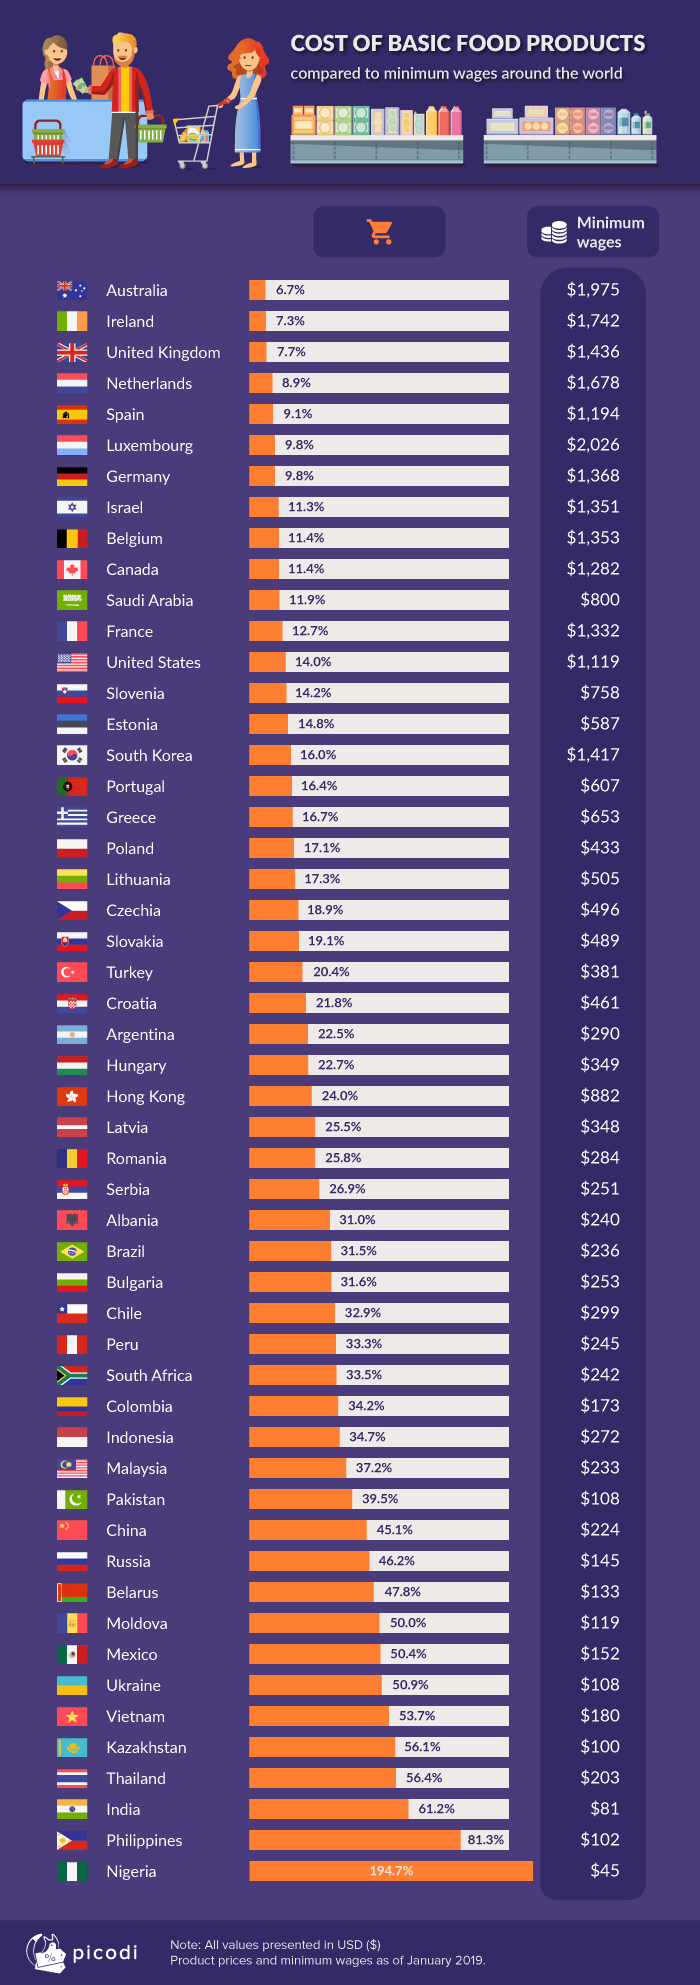 Ranking of countries based on minimum wages and prices of basic food products